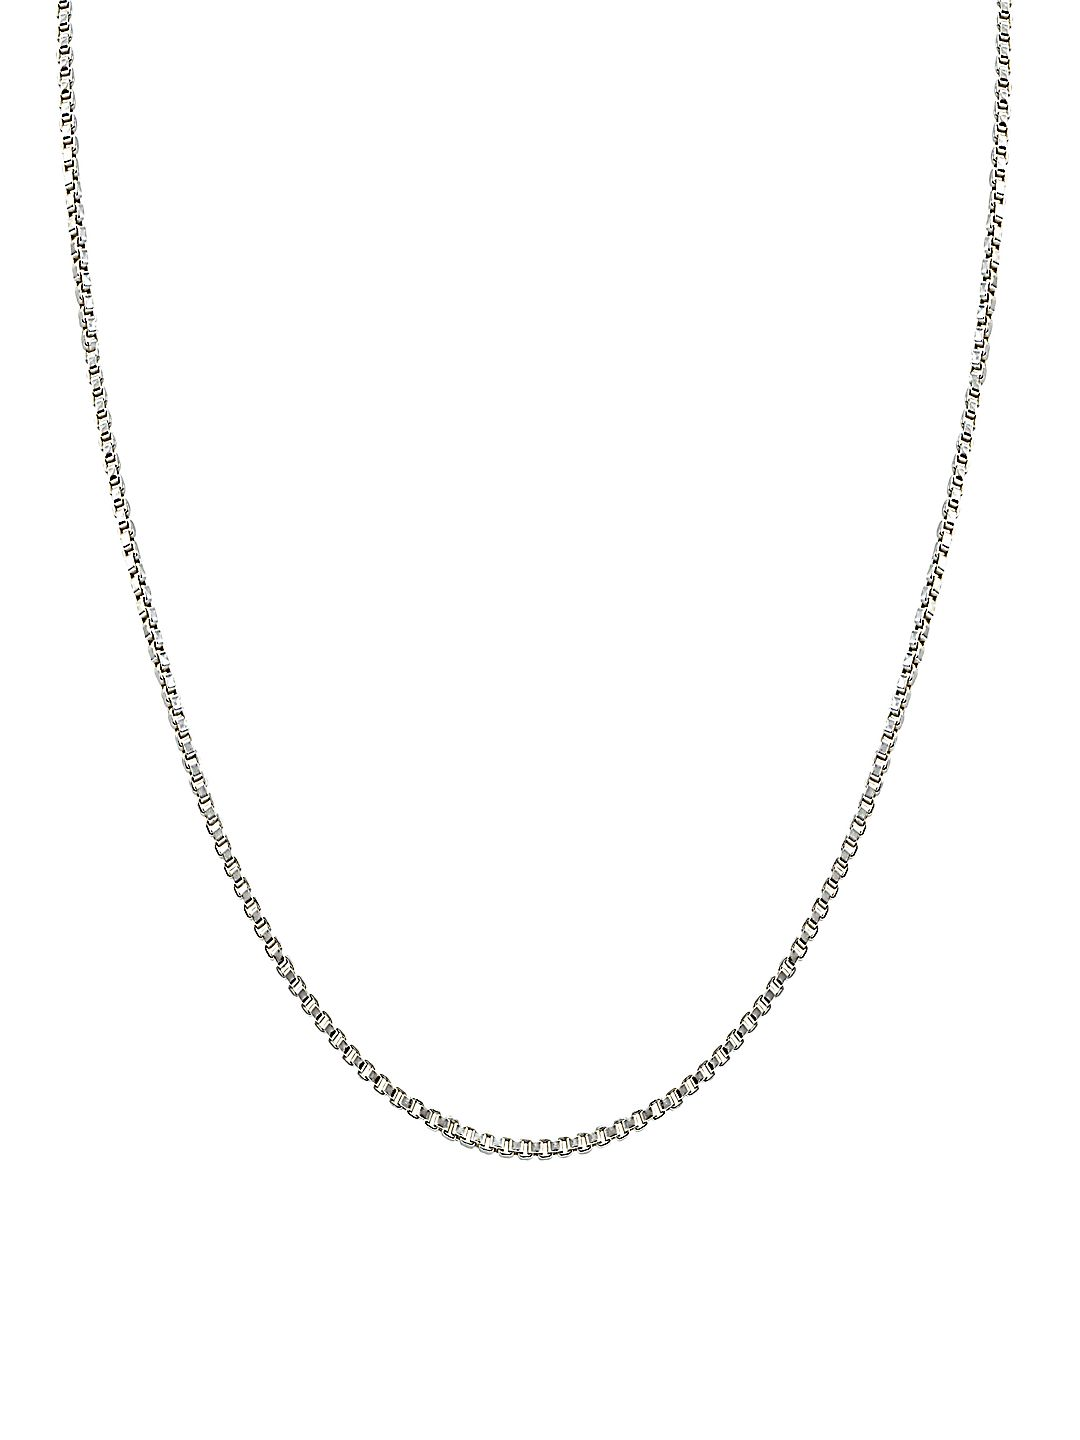 Medium Weight Sterling Silver Chain Necklace